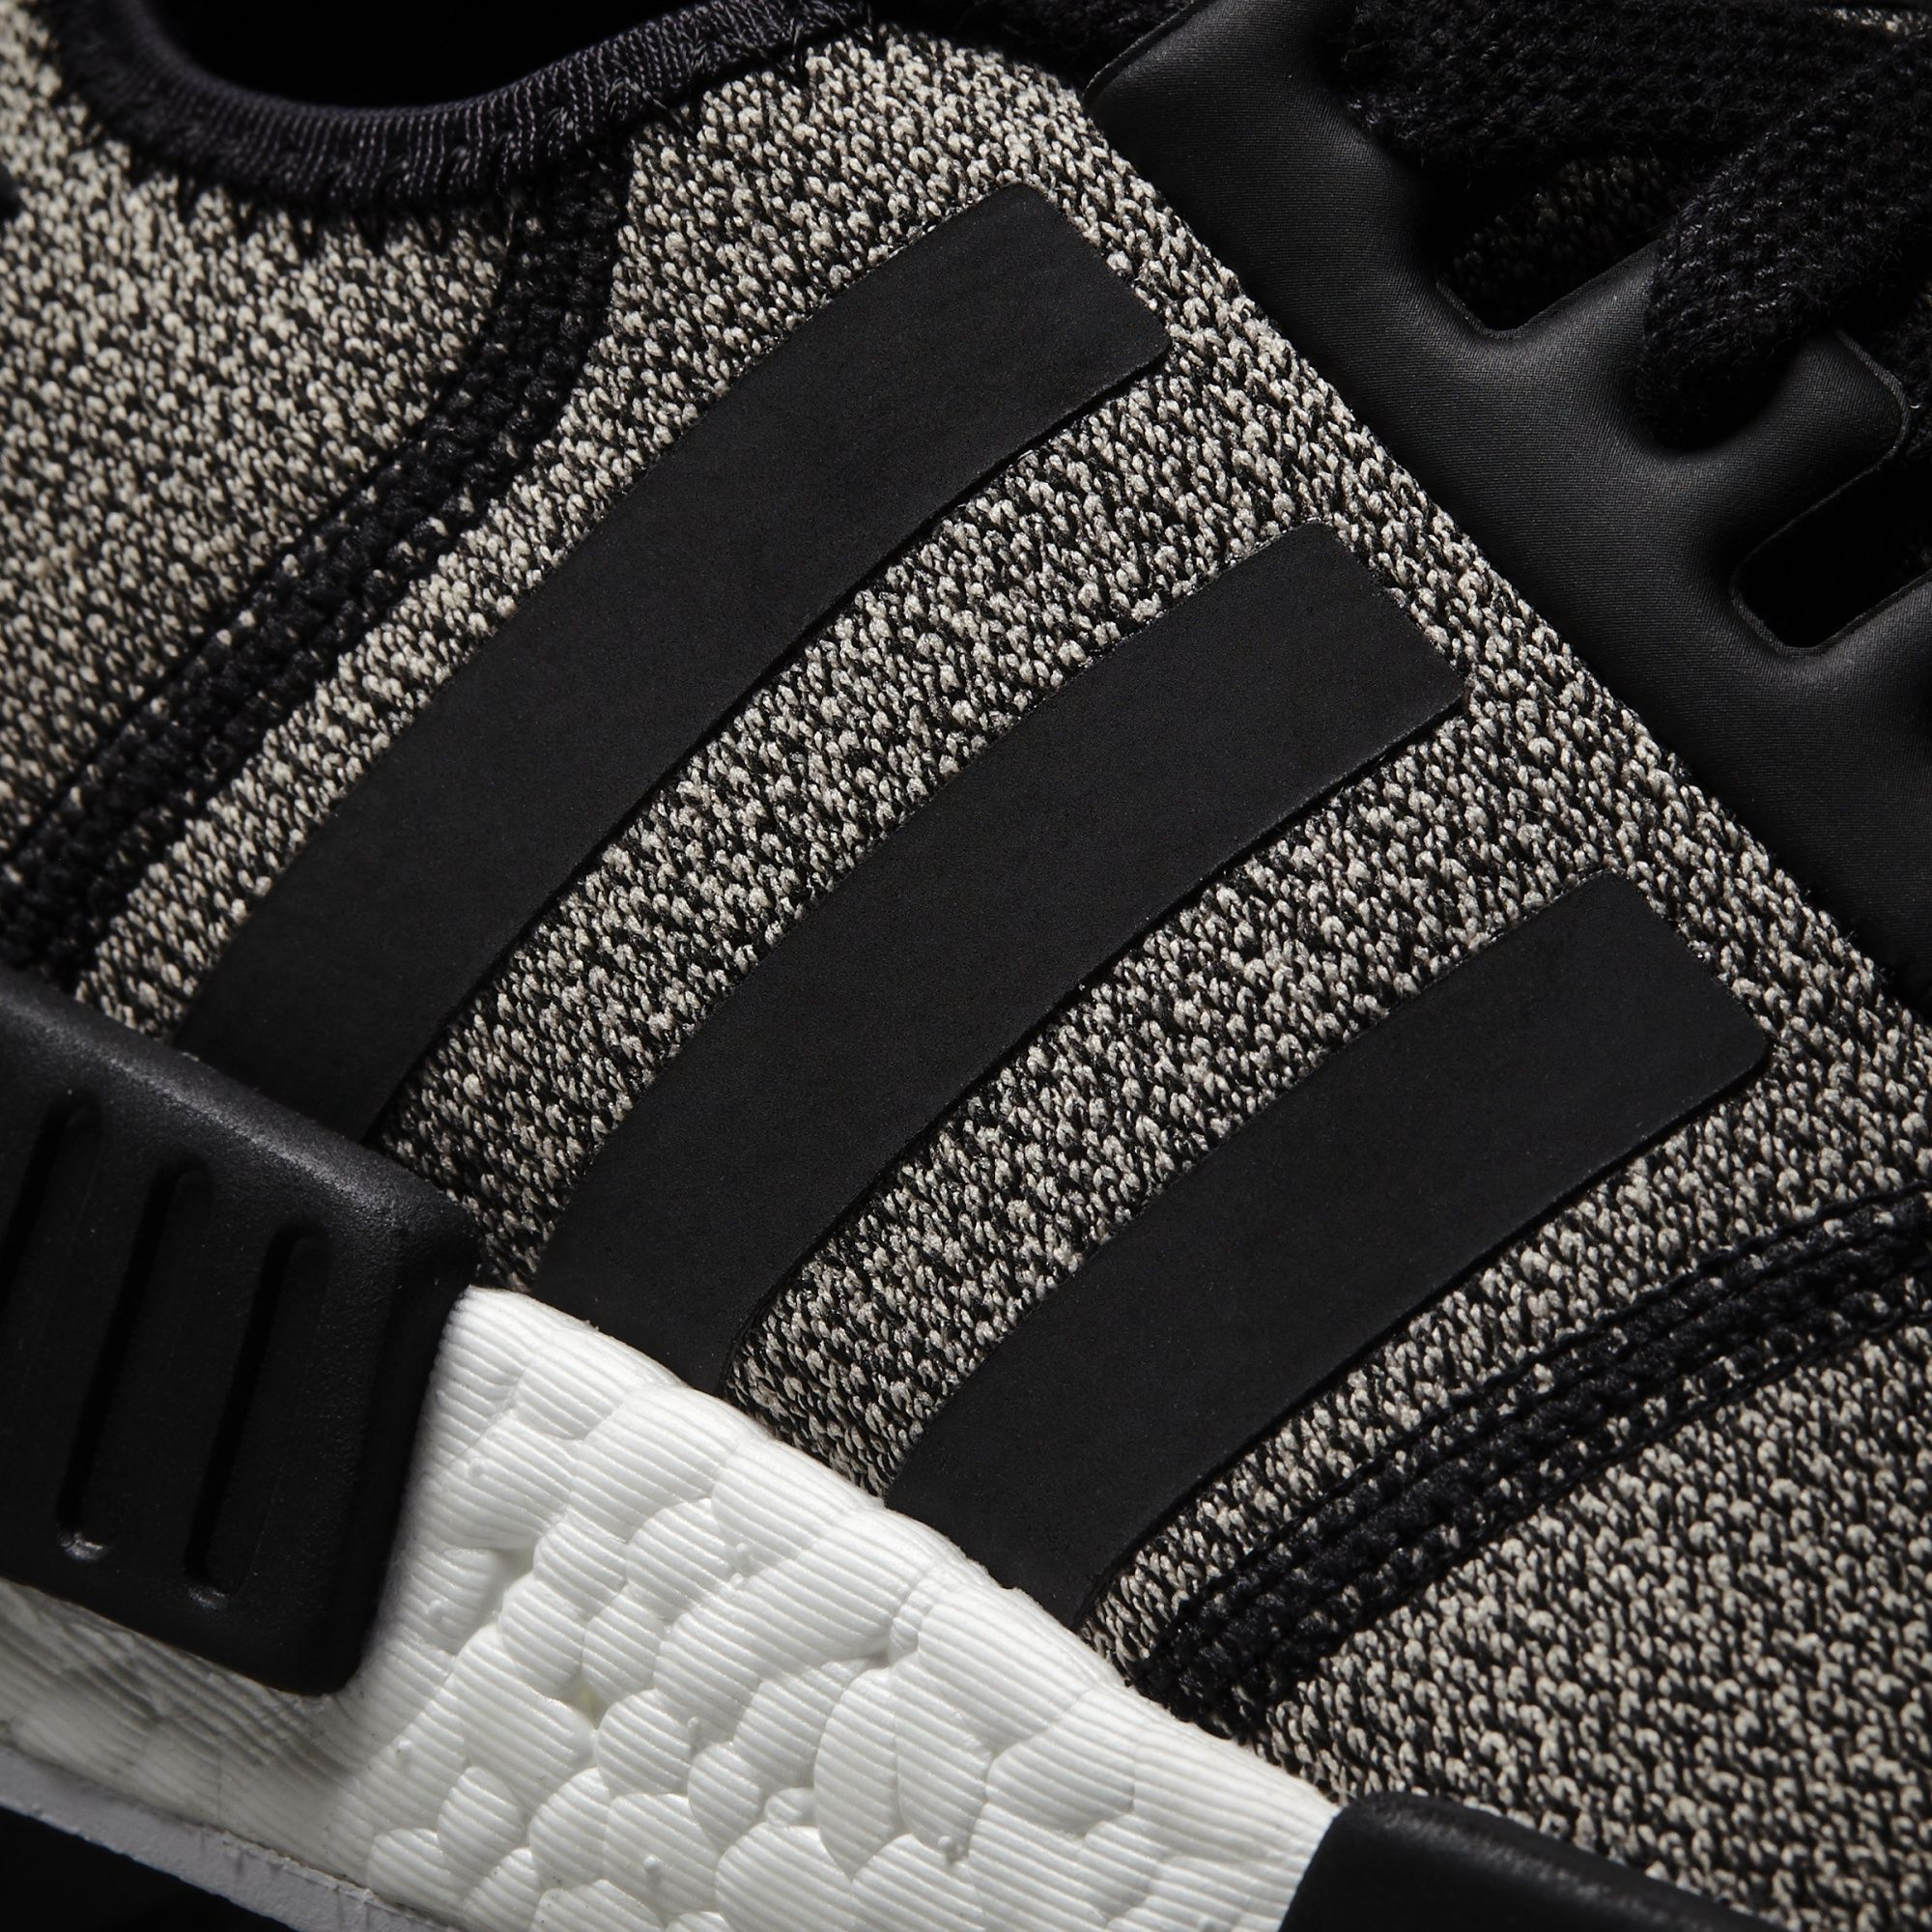 bac95b19d adidas NMD Black White Reflective Stripes Not Reflect